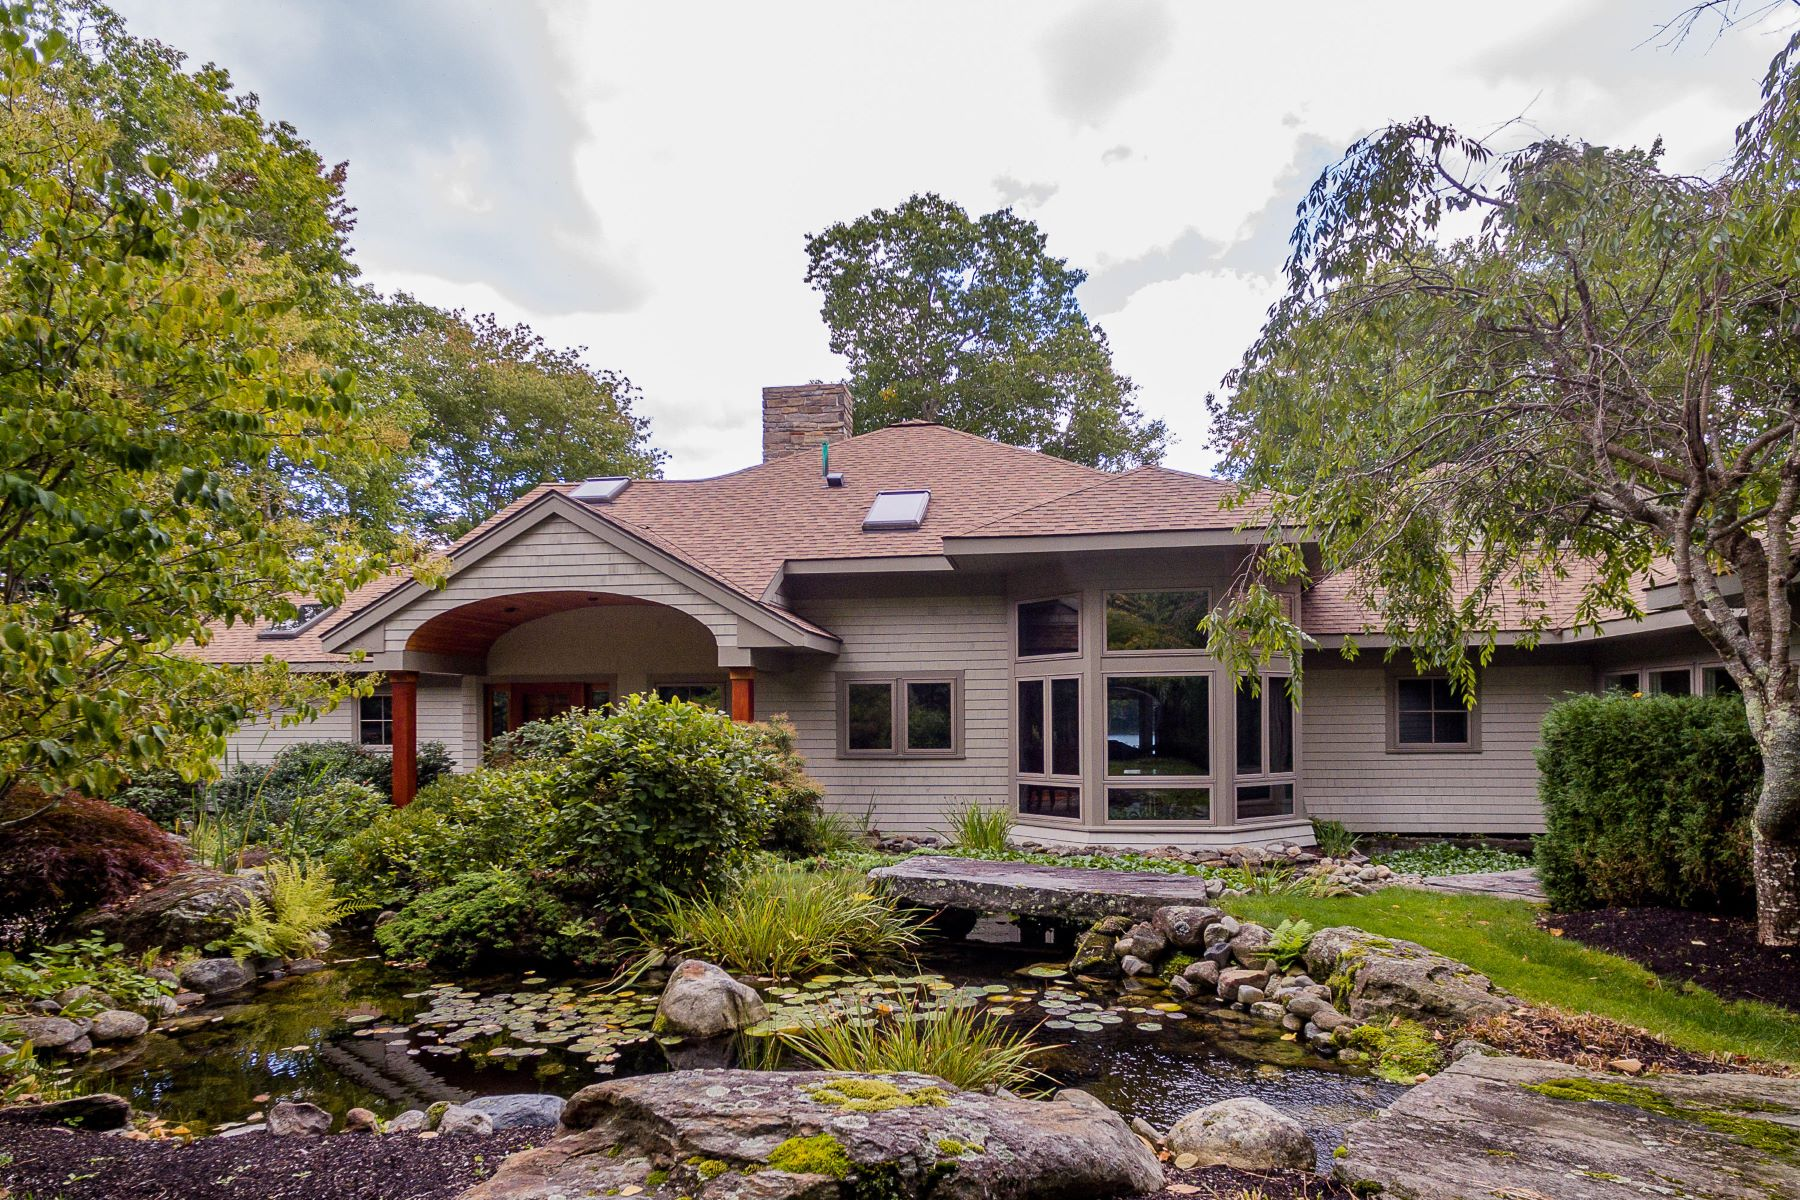 Single Family Homes for Sale at 5 Norumbega Drive Camden, Maine 04843 United States